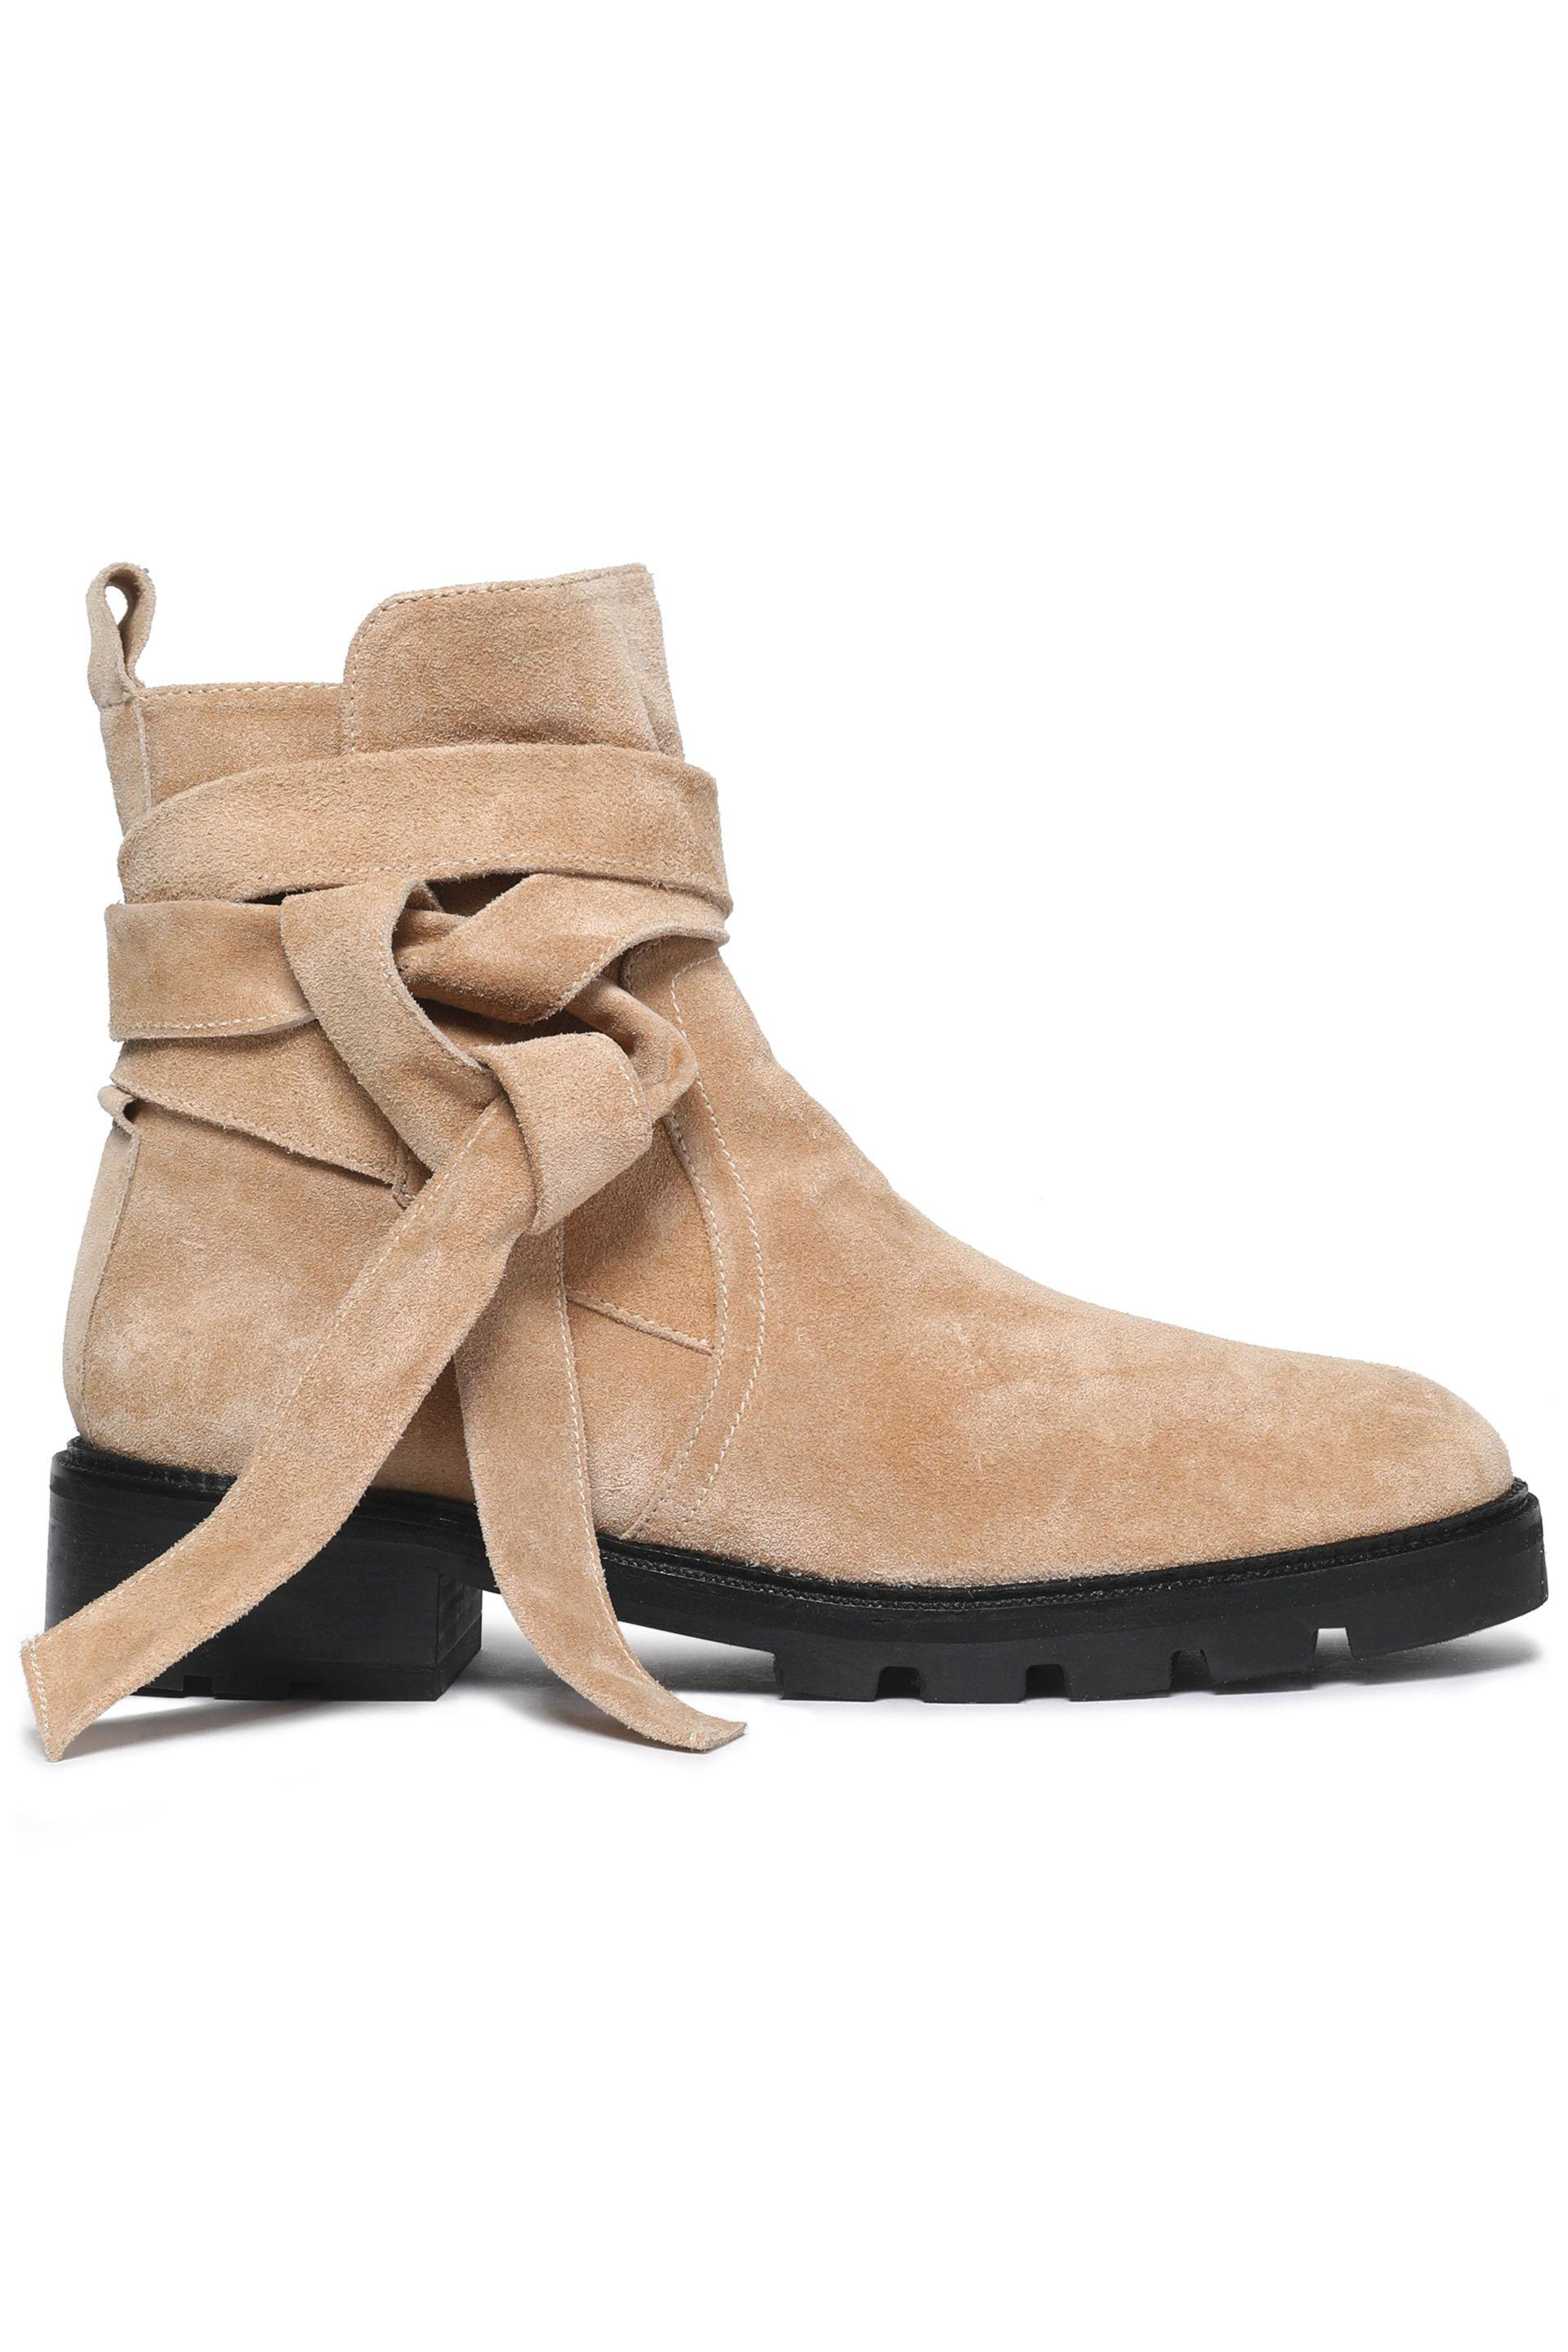 4a4084e5b48f Castaner Knotted Suede Ankle Boots in Natural - Lyst